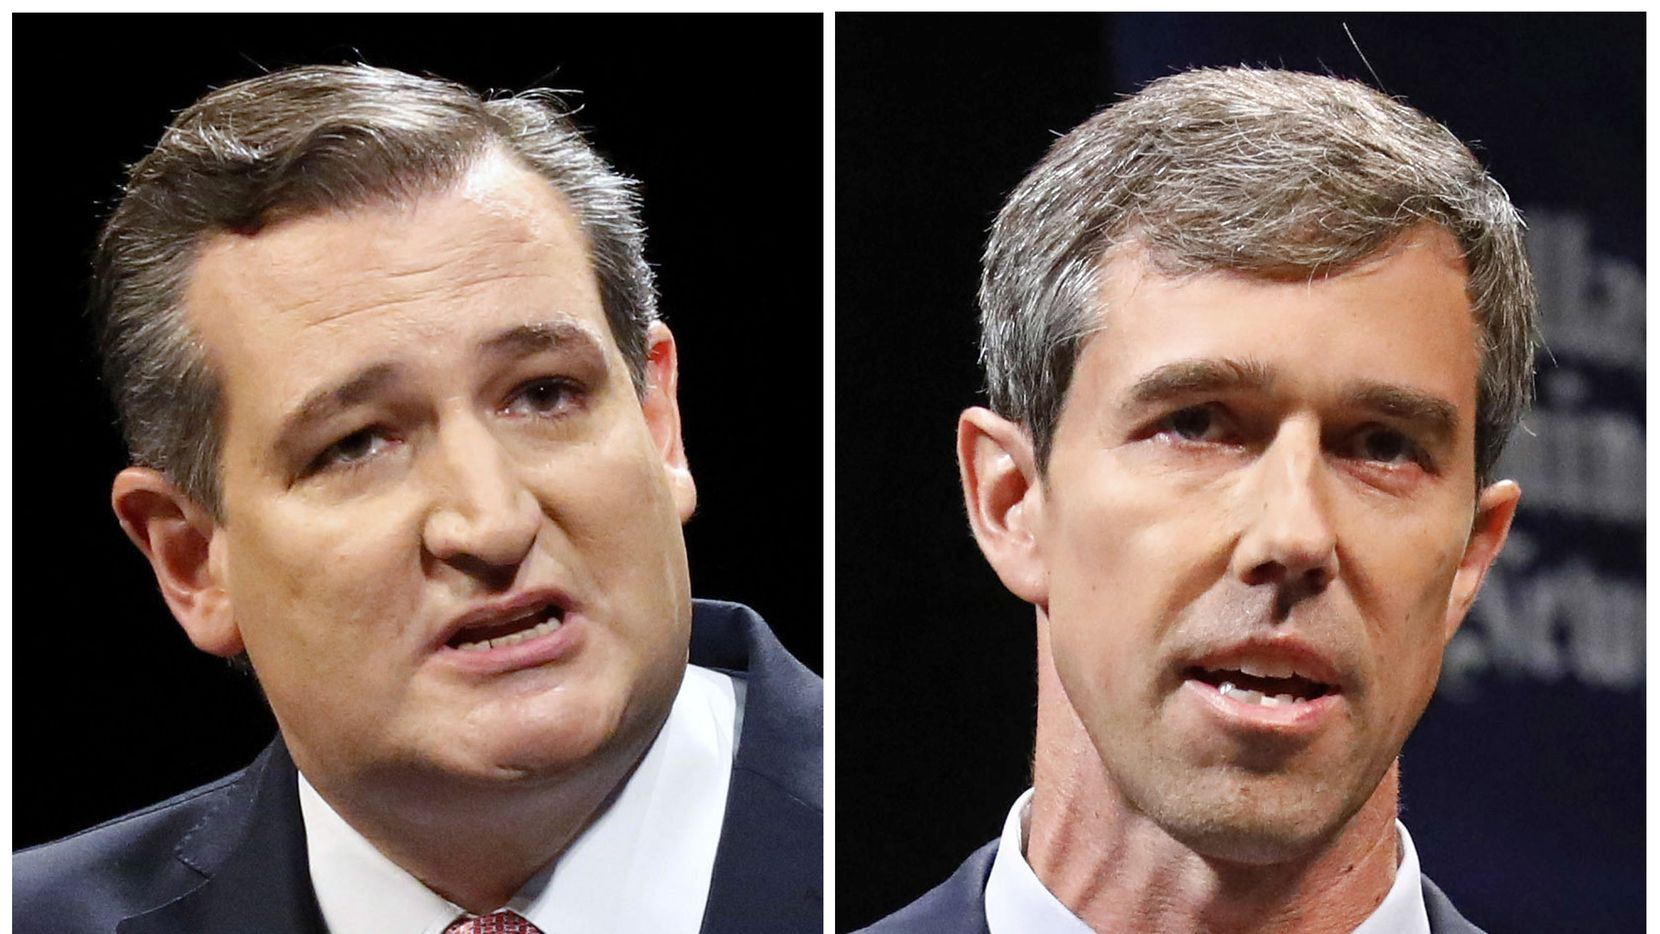 FILE - This combination of Sept. 21, 2018, file photos shows Texas U.S. Senate candidates in the November 2018 election from left, incumbent GOP Sen. Ted Cruz, left, and Democratic U.S. Representative Beto O'Rourke. (Tom Fox/The Dallas Morning News via AP, Pool, File)